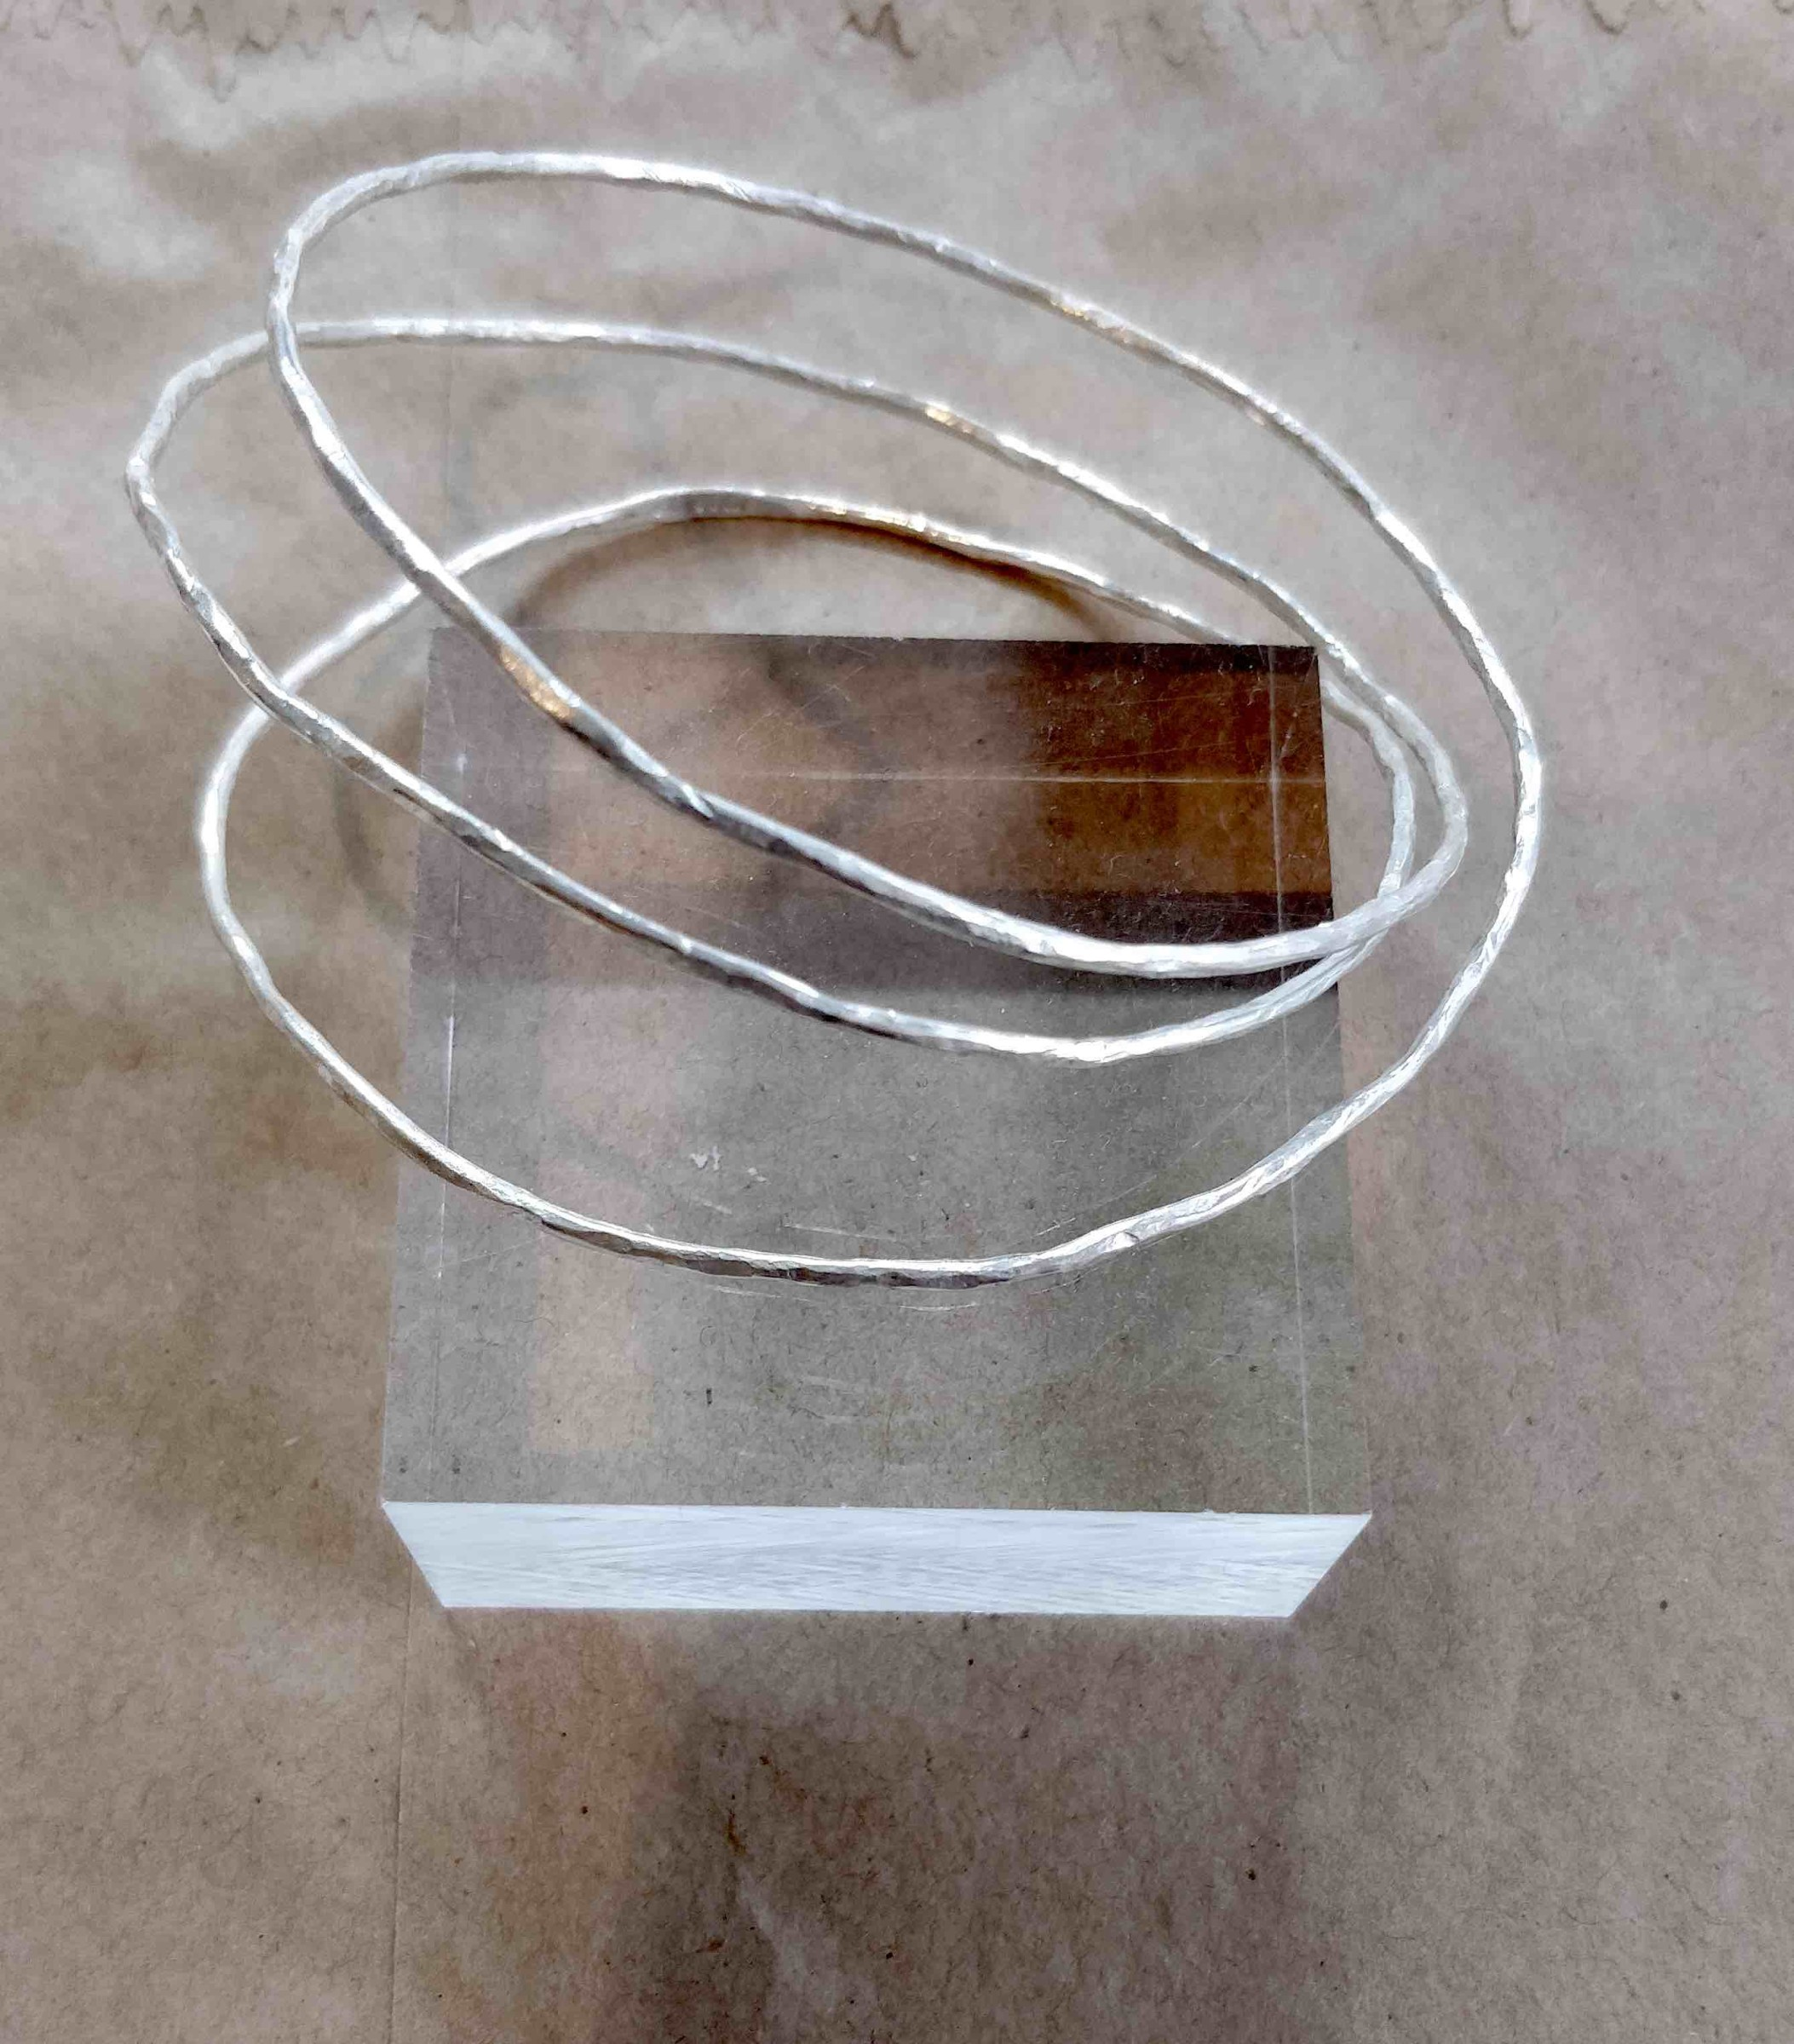 "<span class=""link fancybox-details-link""><a href=""/artists/148-roberta-hopkins/works/5707-roberta-hopkins-triple-twig-bangle-2018/"">View Detail Page</a></span><div class=""artist""><strong>Roberta Hopkins</strong></div> <div class=""title""><em>Triple Twig Bangle</em>, 2018</div> <div class=""medium"">sterling silver</div><div class=""copyright_line"">Copyright The Artist</div>"